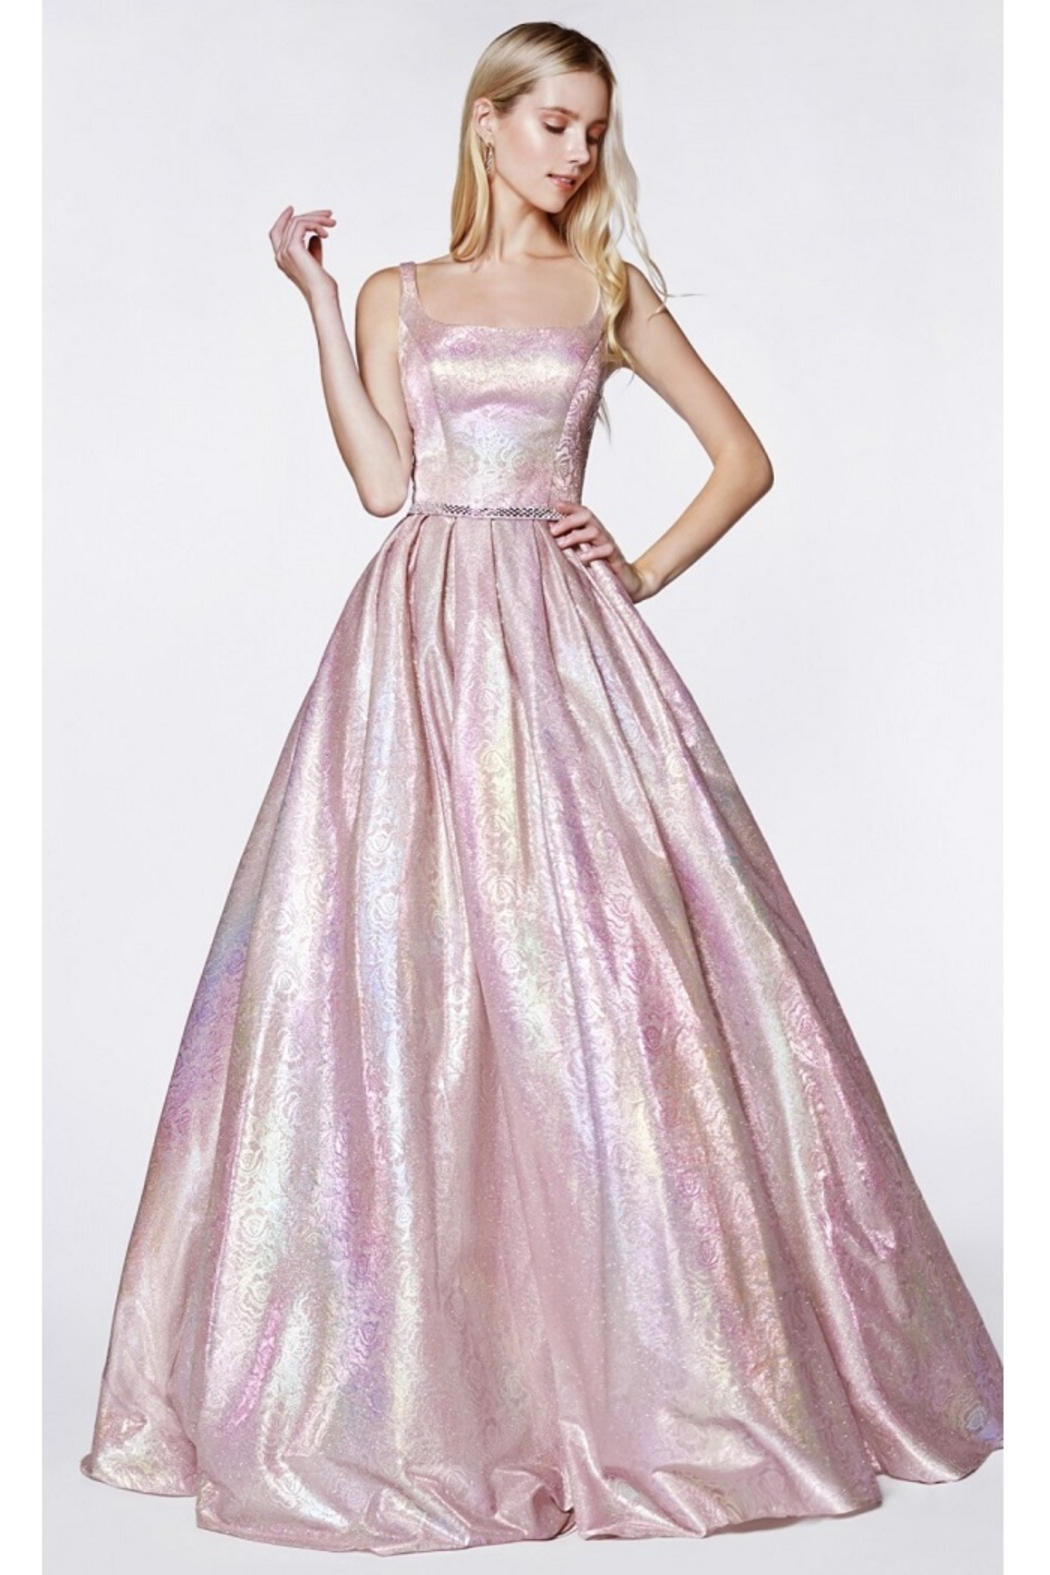 Cinderella Divine Metallic Blush Floral Ball Gown - Main Image